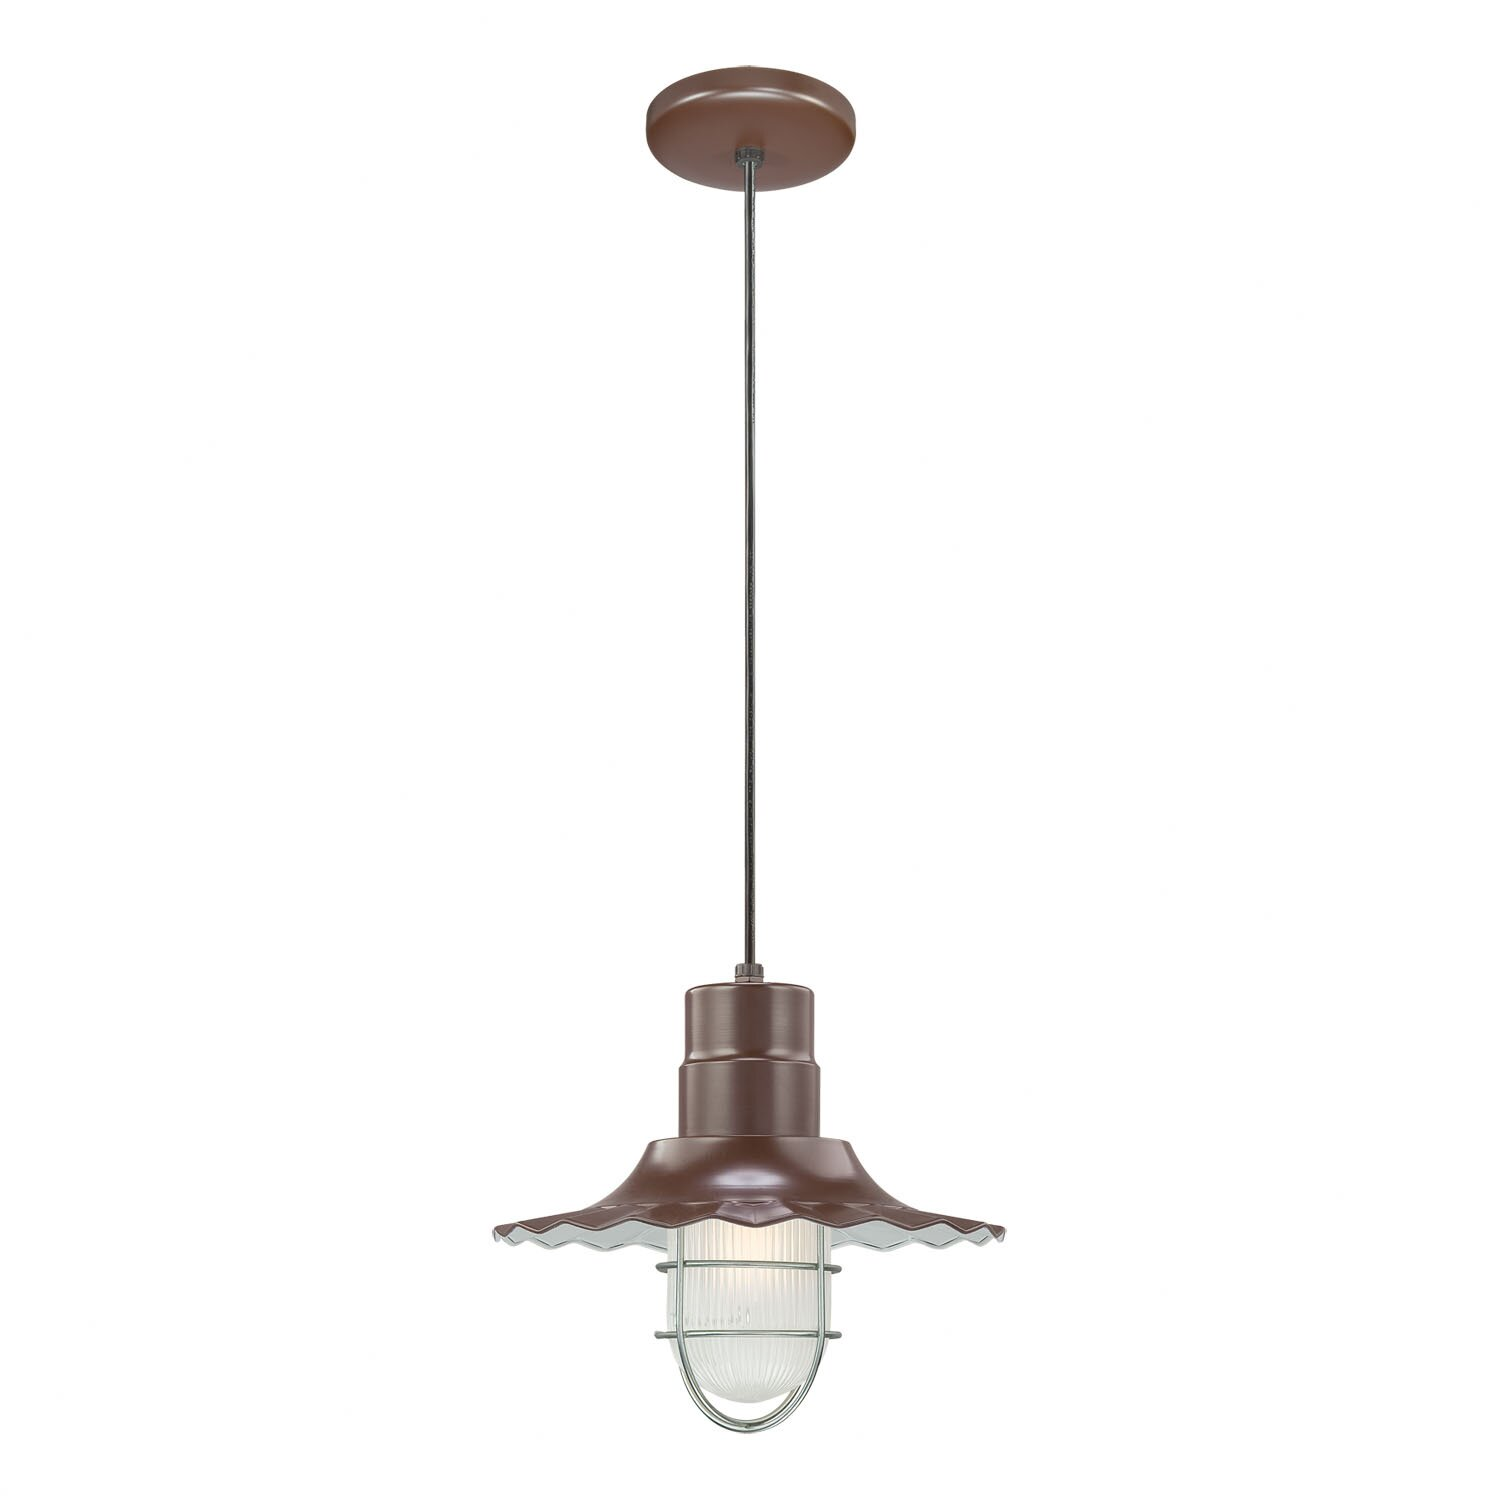 Kitchen Island Pendant Lighting: Millennium Lighting R Series 1 Light Kitchen Island